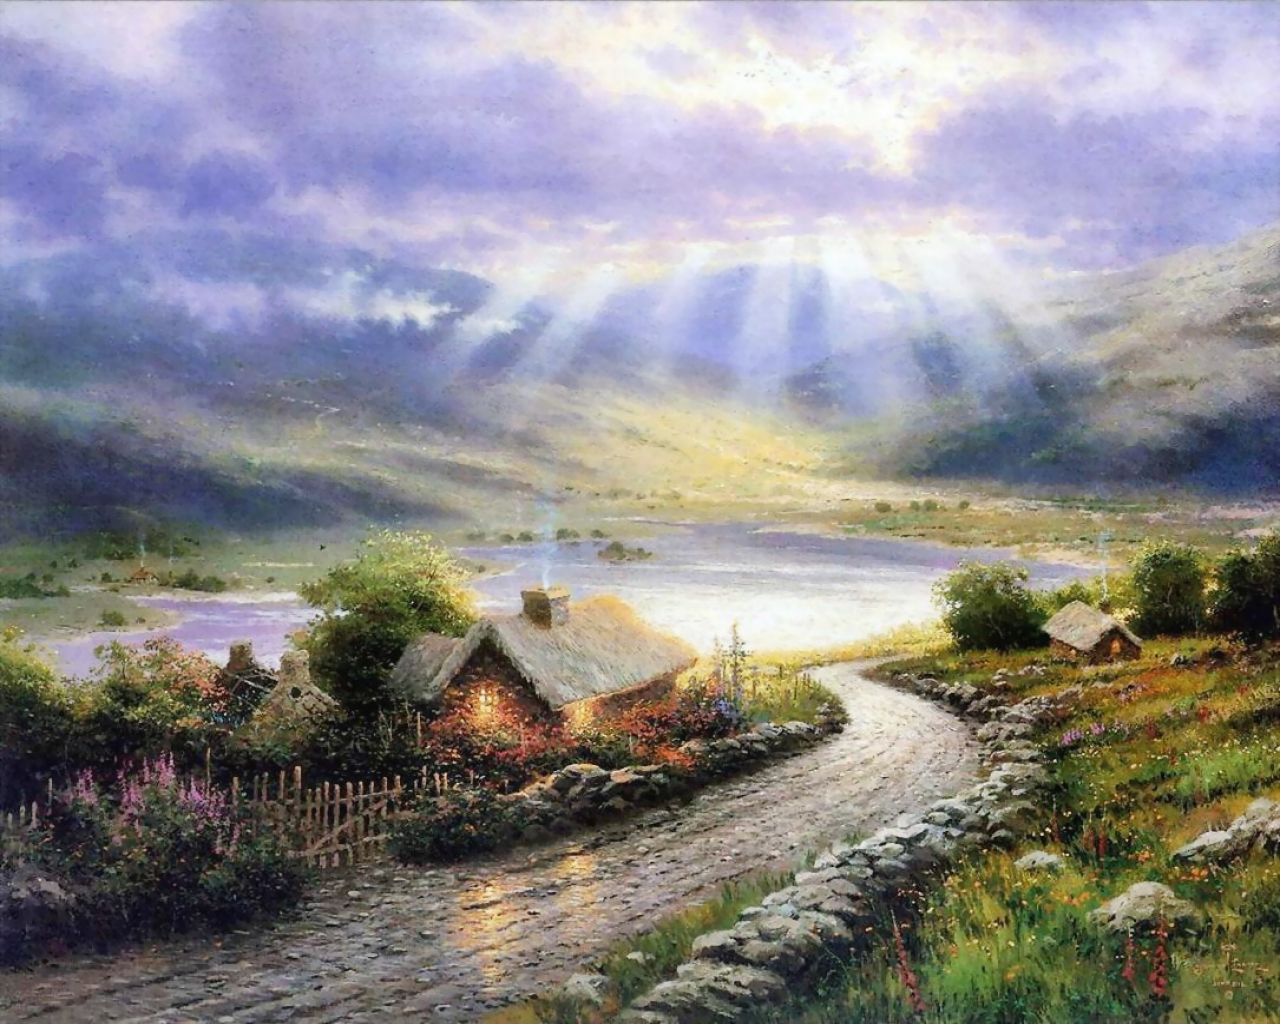 Thomas Kinkade - Sun After Storm